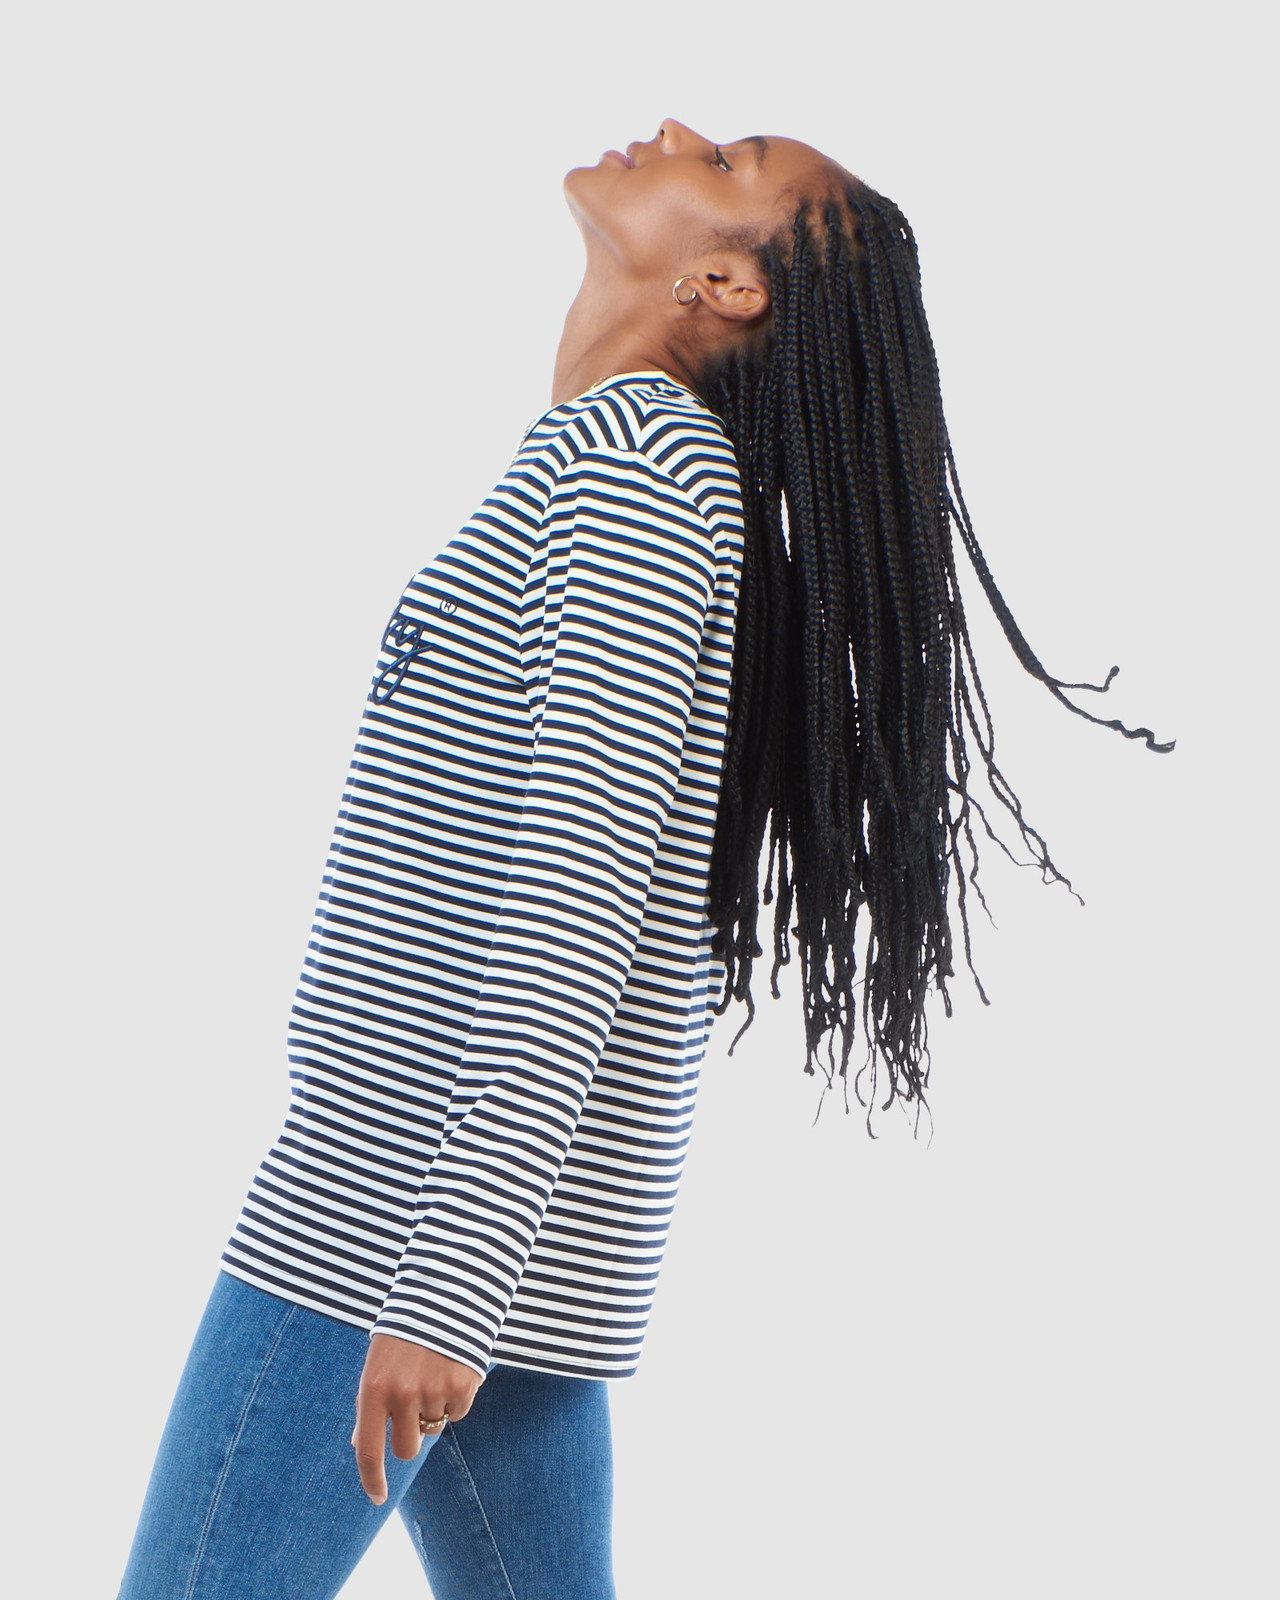 Superdry Womens STRIPE GRAPHIC NYC TOP Navy Long Sleeve Top 2